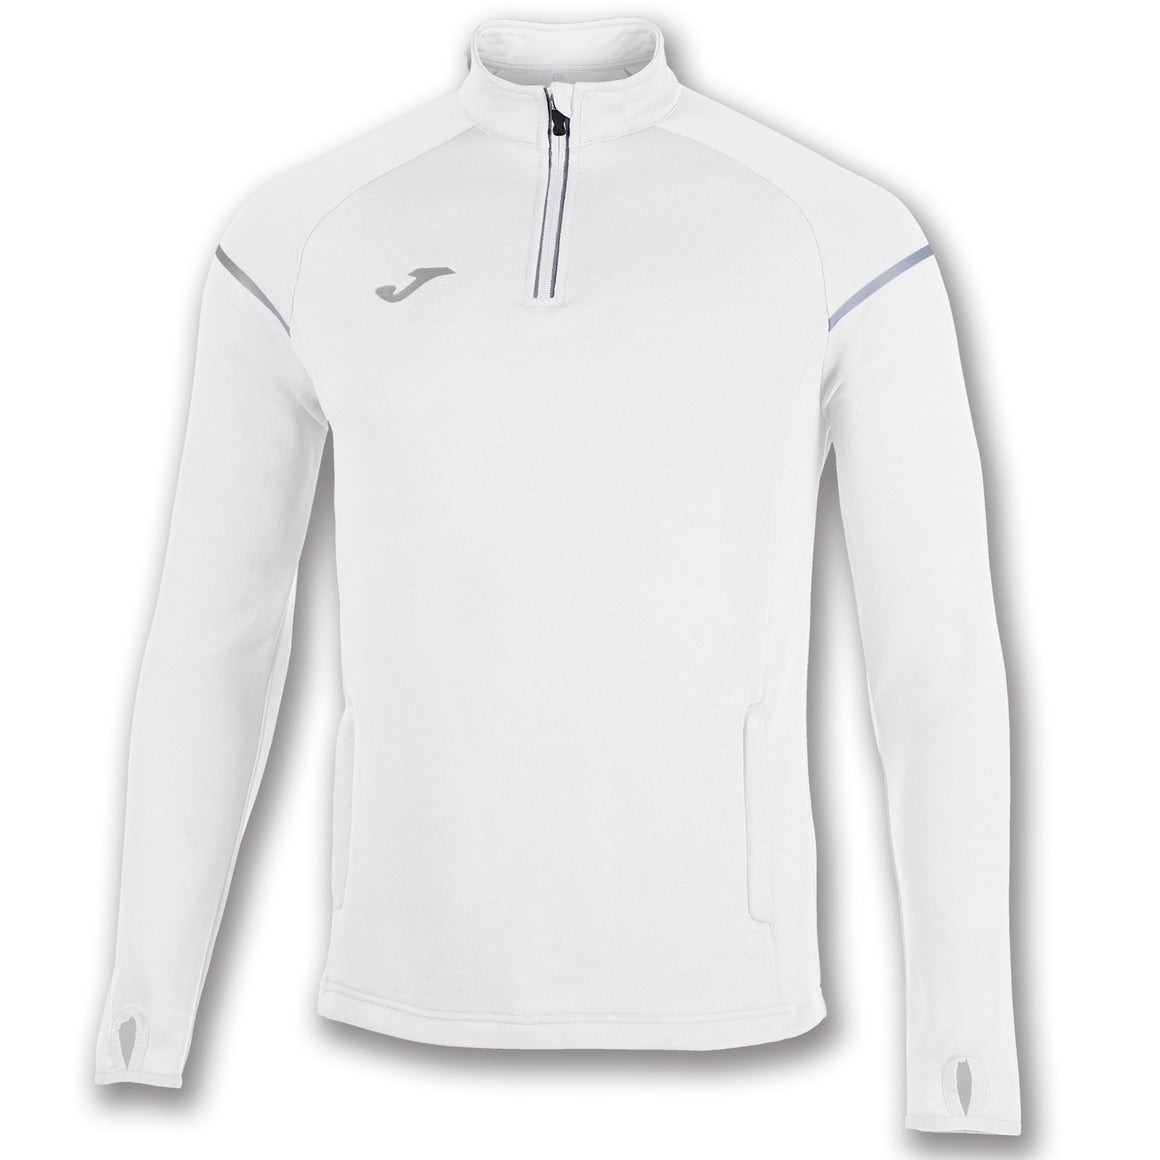 Joma Race Sweatshirt Men's